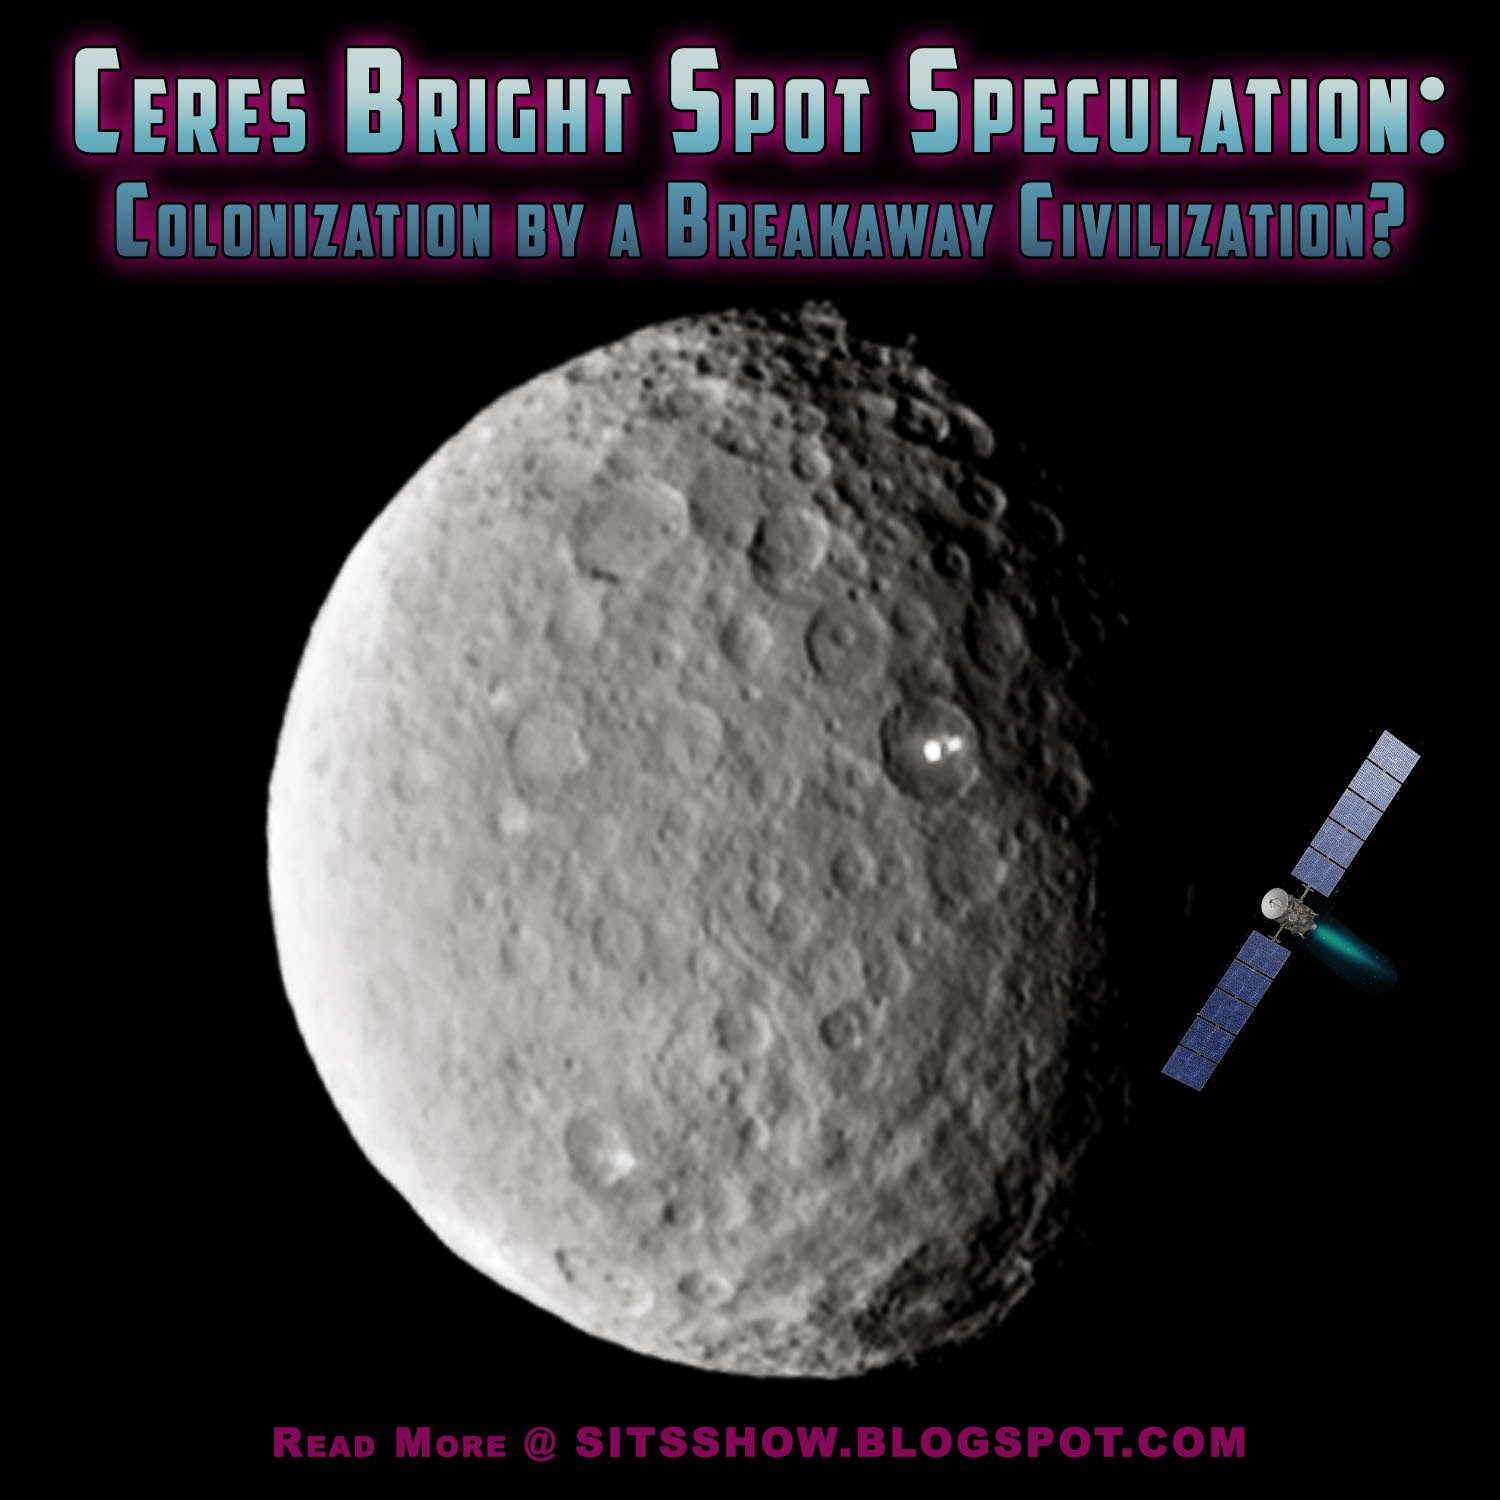 Ceres Bright Spot | Colonization of Ceres by a Breakaway Civilization?  Colonization%2Bof%2BCeres